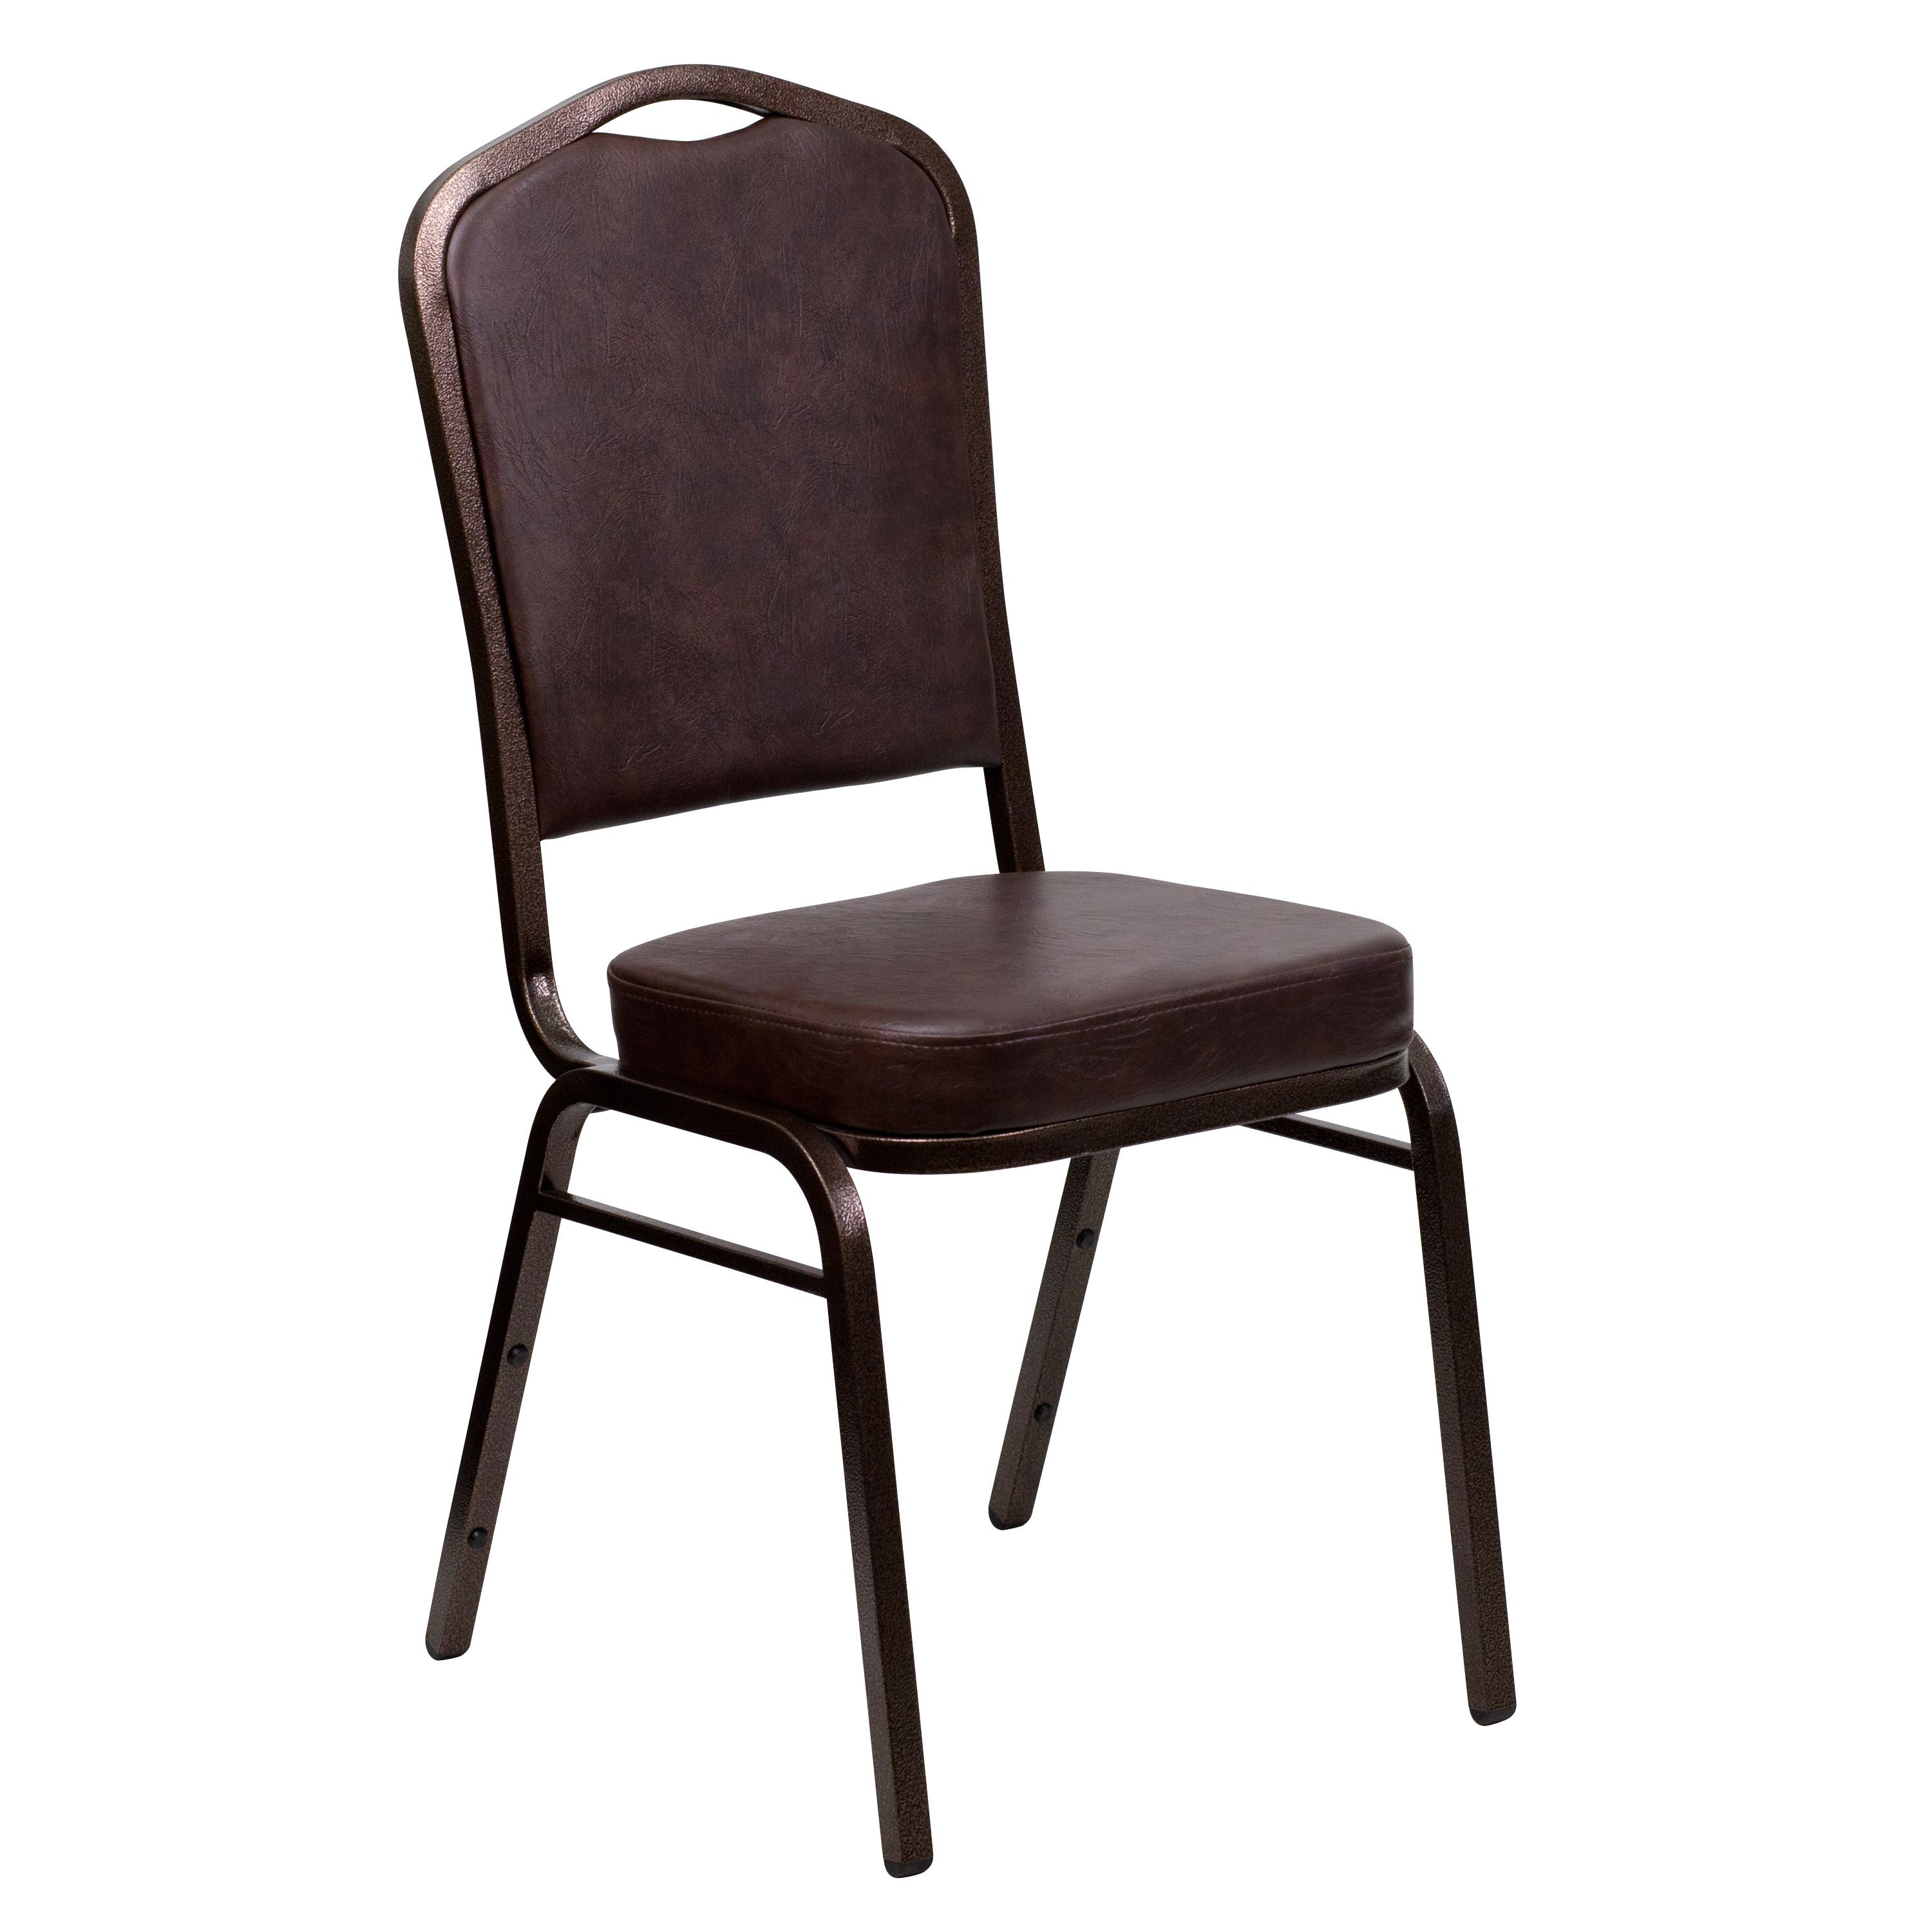 Flash Furniture FD-C01-COPPER-BRN-VY-GG HERCULES Series Crown Back Stacking Banquet Chair with Brown Vinyl/Copper Vein Frame